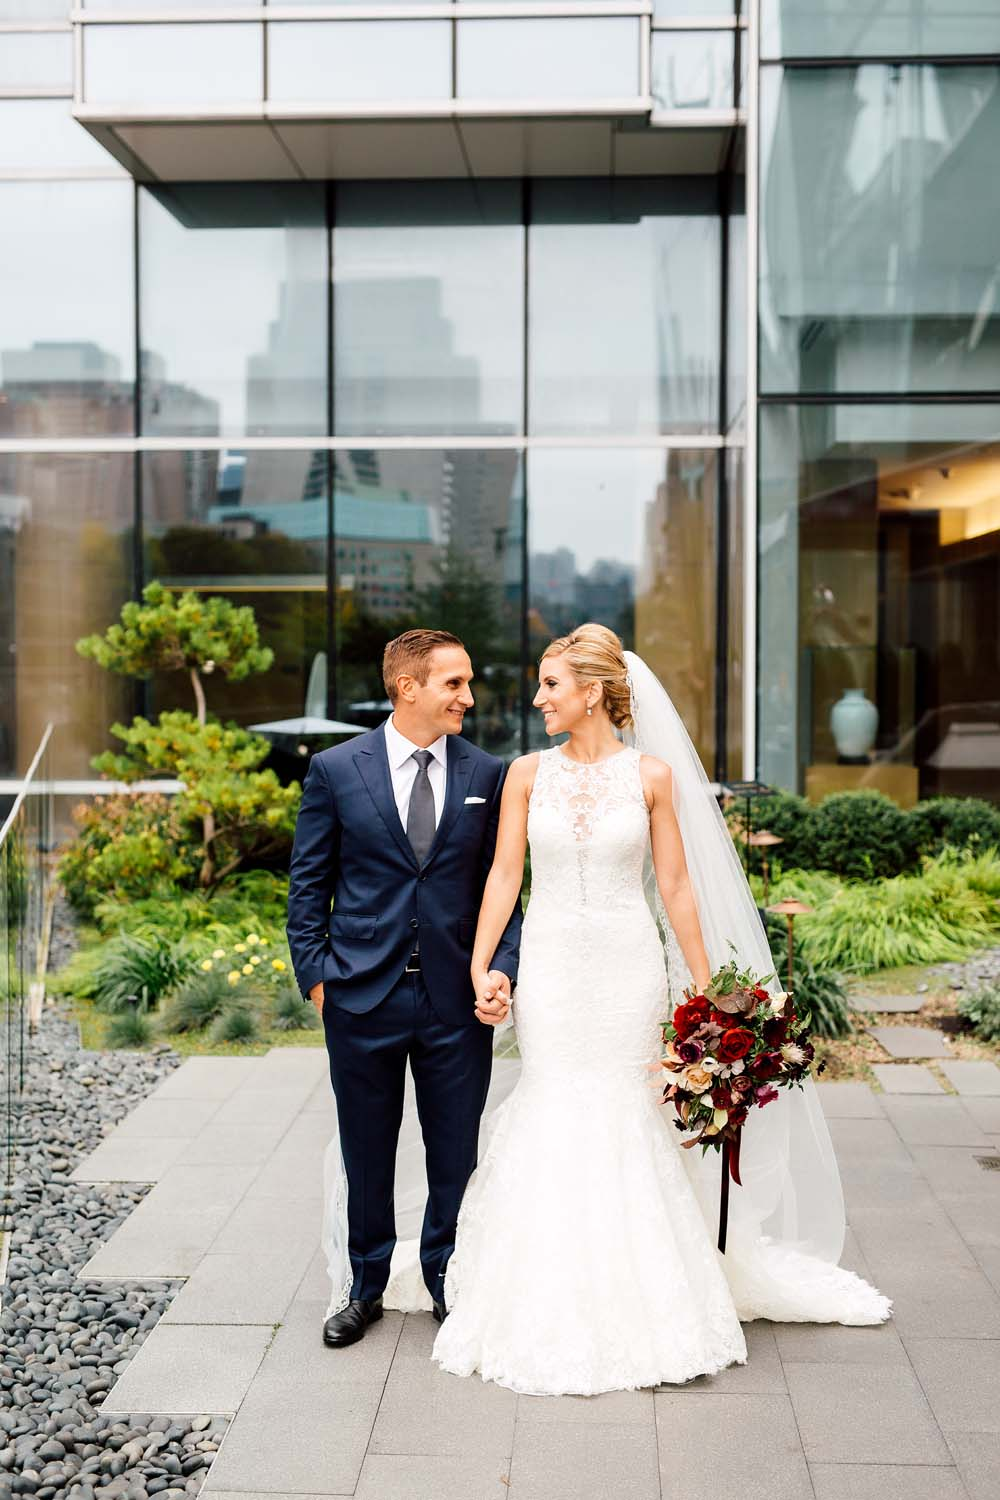 luxurious fall wedding in downtown toronto - bride and groom